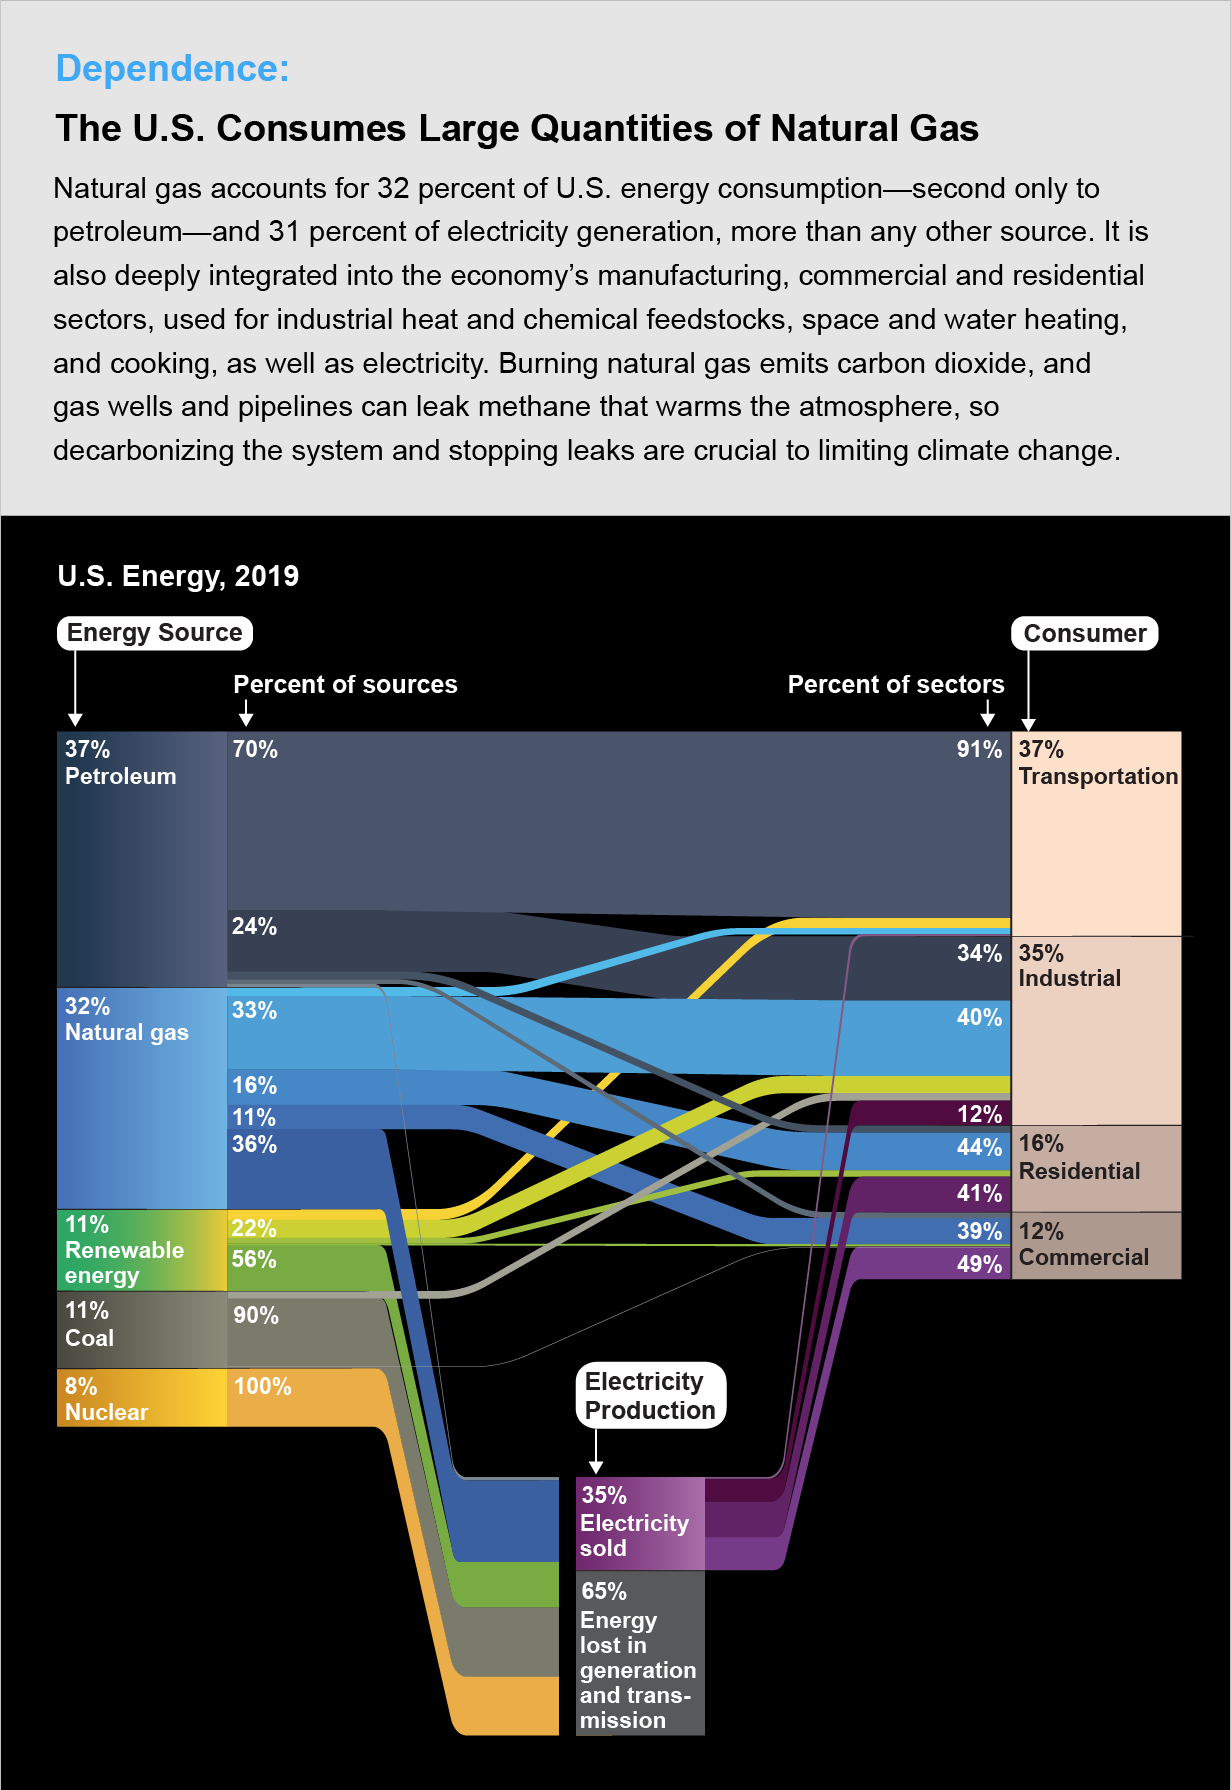 Diagram shows breakdown of energy sources, electricity production and energy consumers in the U.S. in 2019.